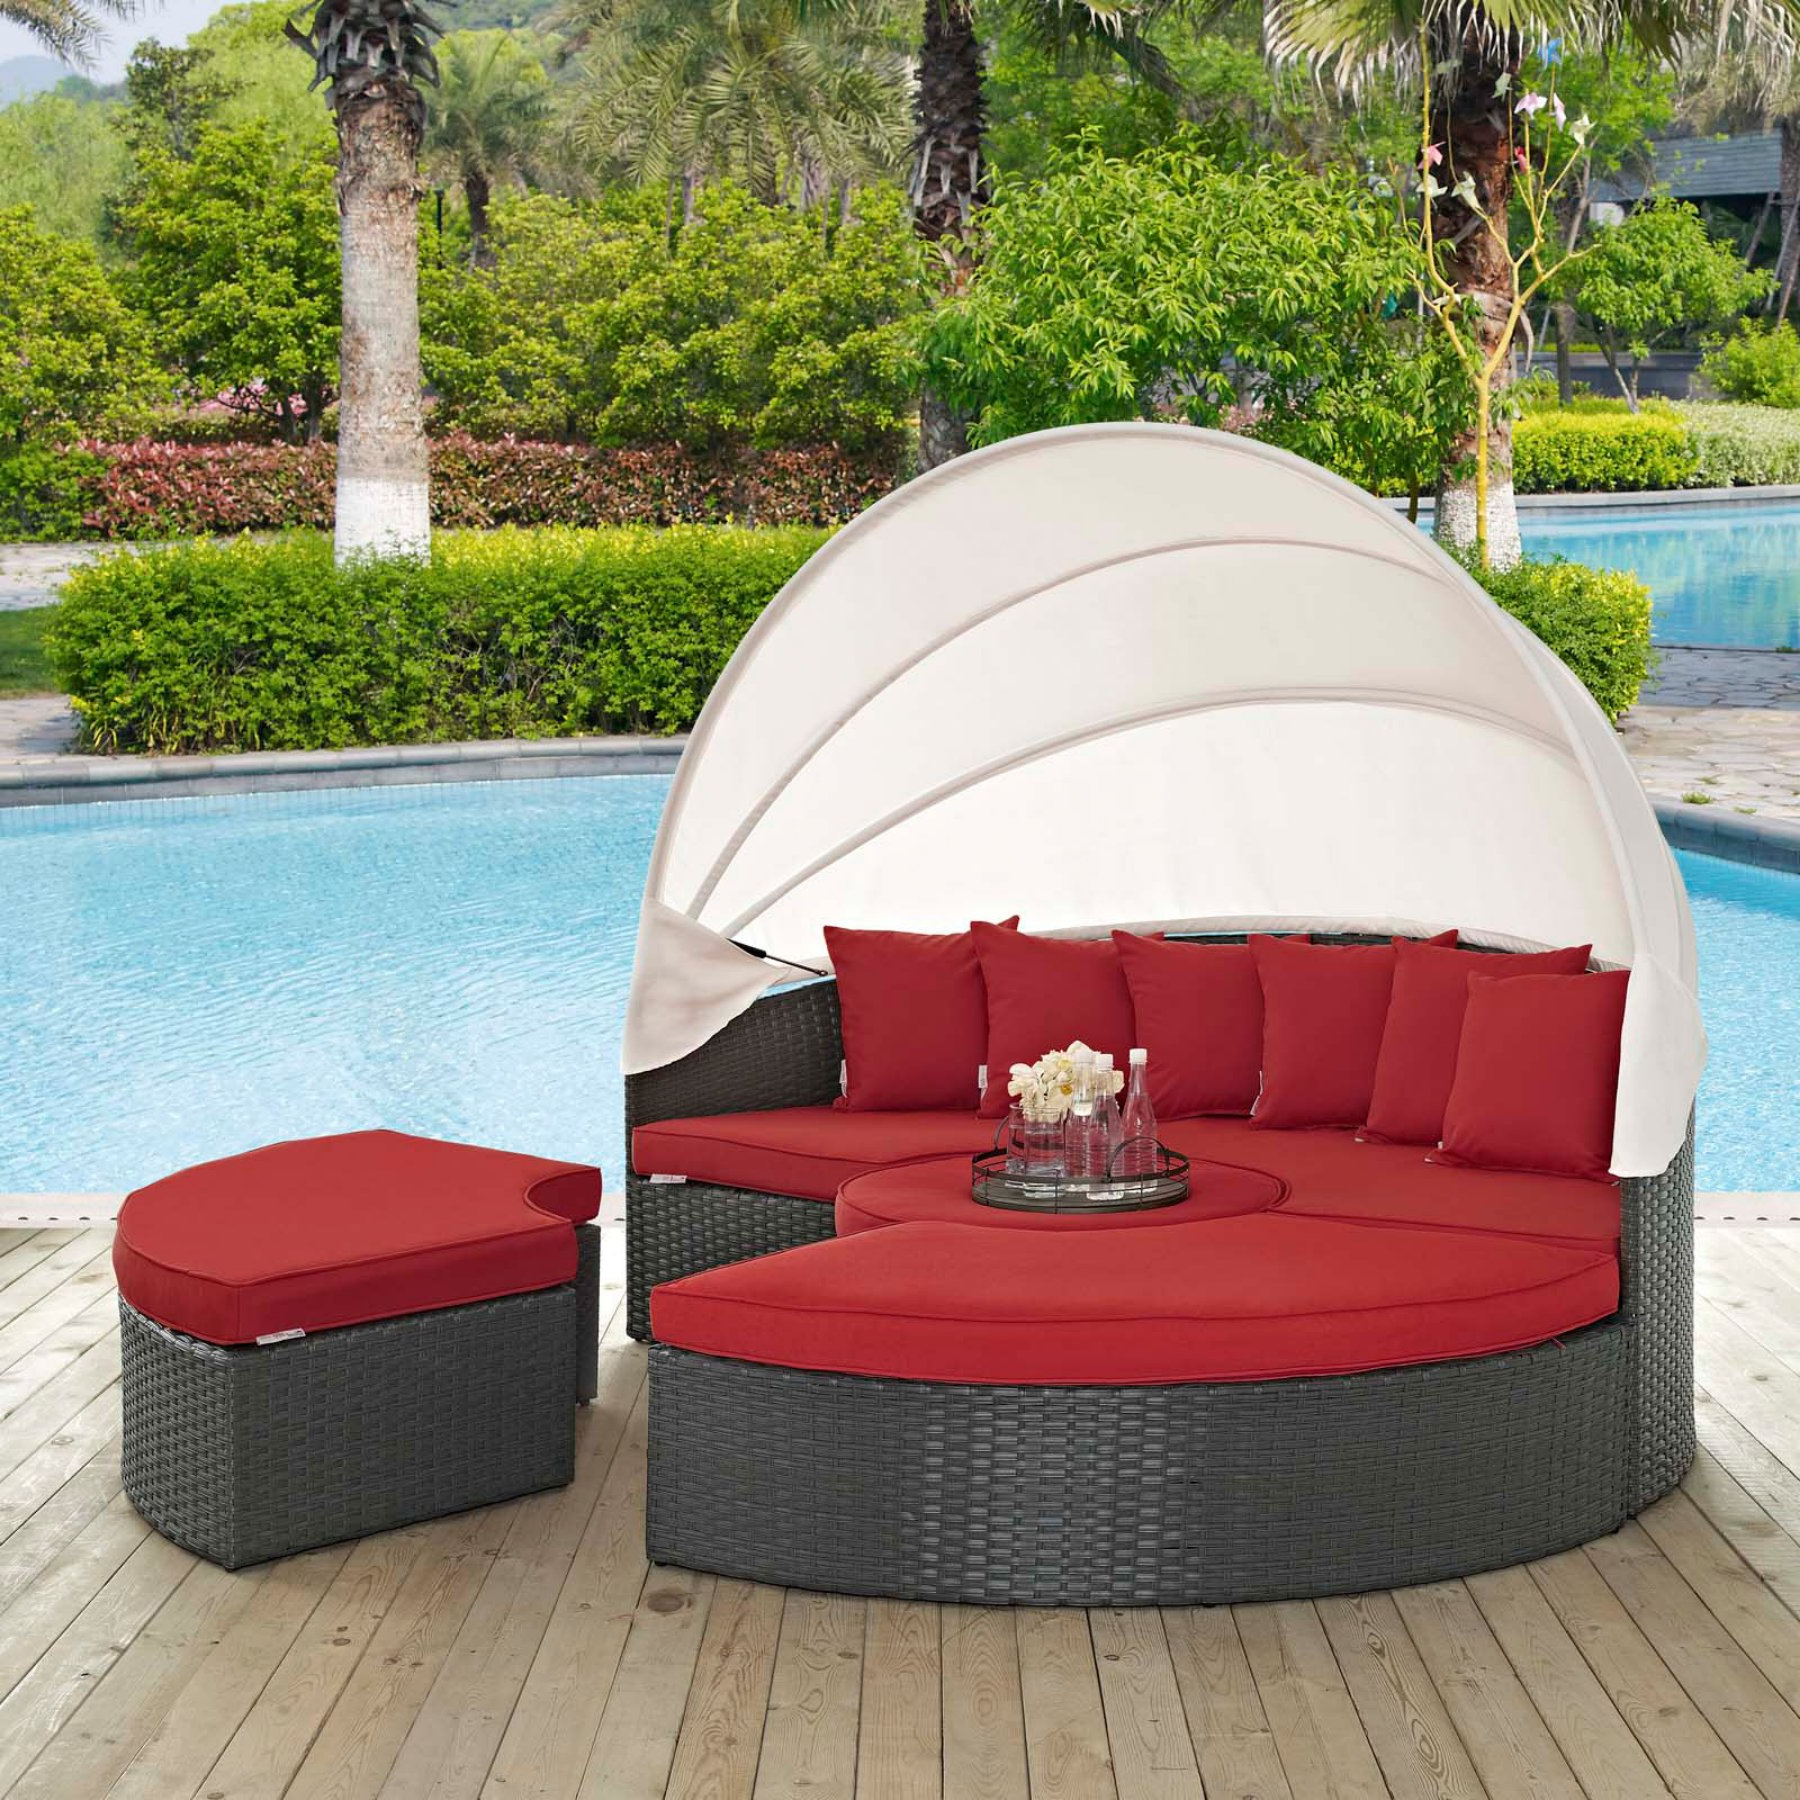 Famous Modway Sojourn Wicker Patio Daybed With Canopy With With Regard To Hatley Patio Daybeds With Cushions (View 14 of 20)